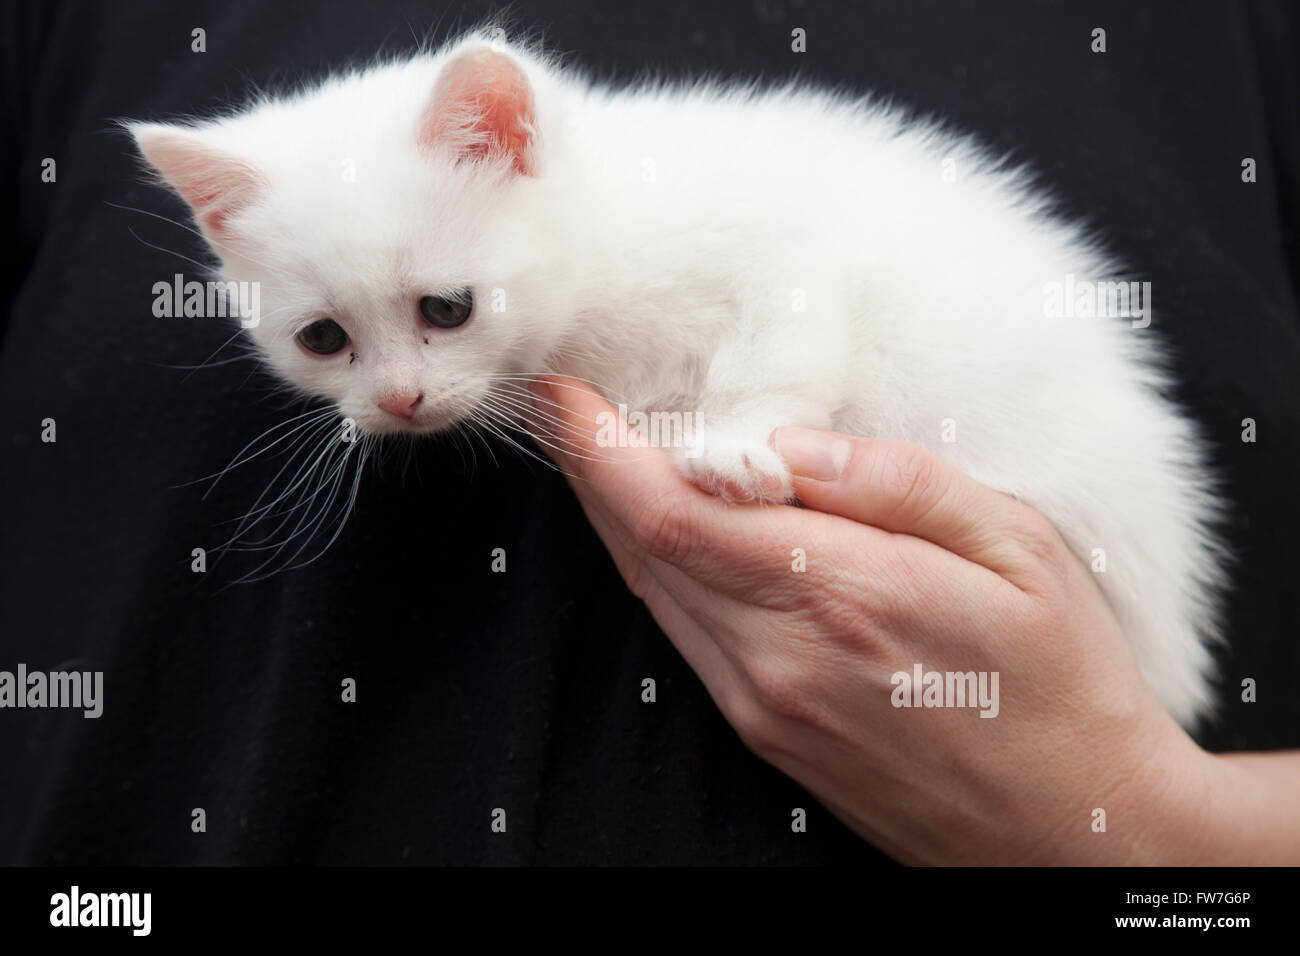 Cat, animal, domestic, tender, sweet, relaxing Stock Photo